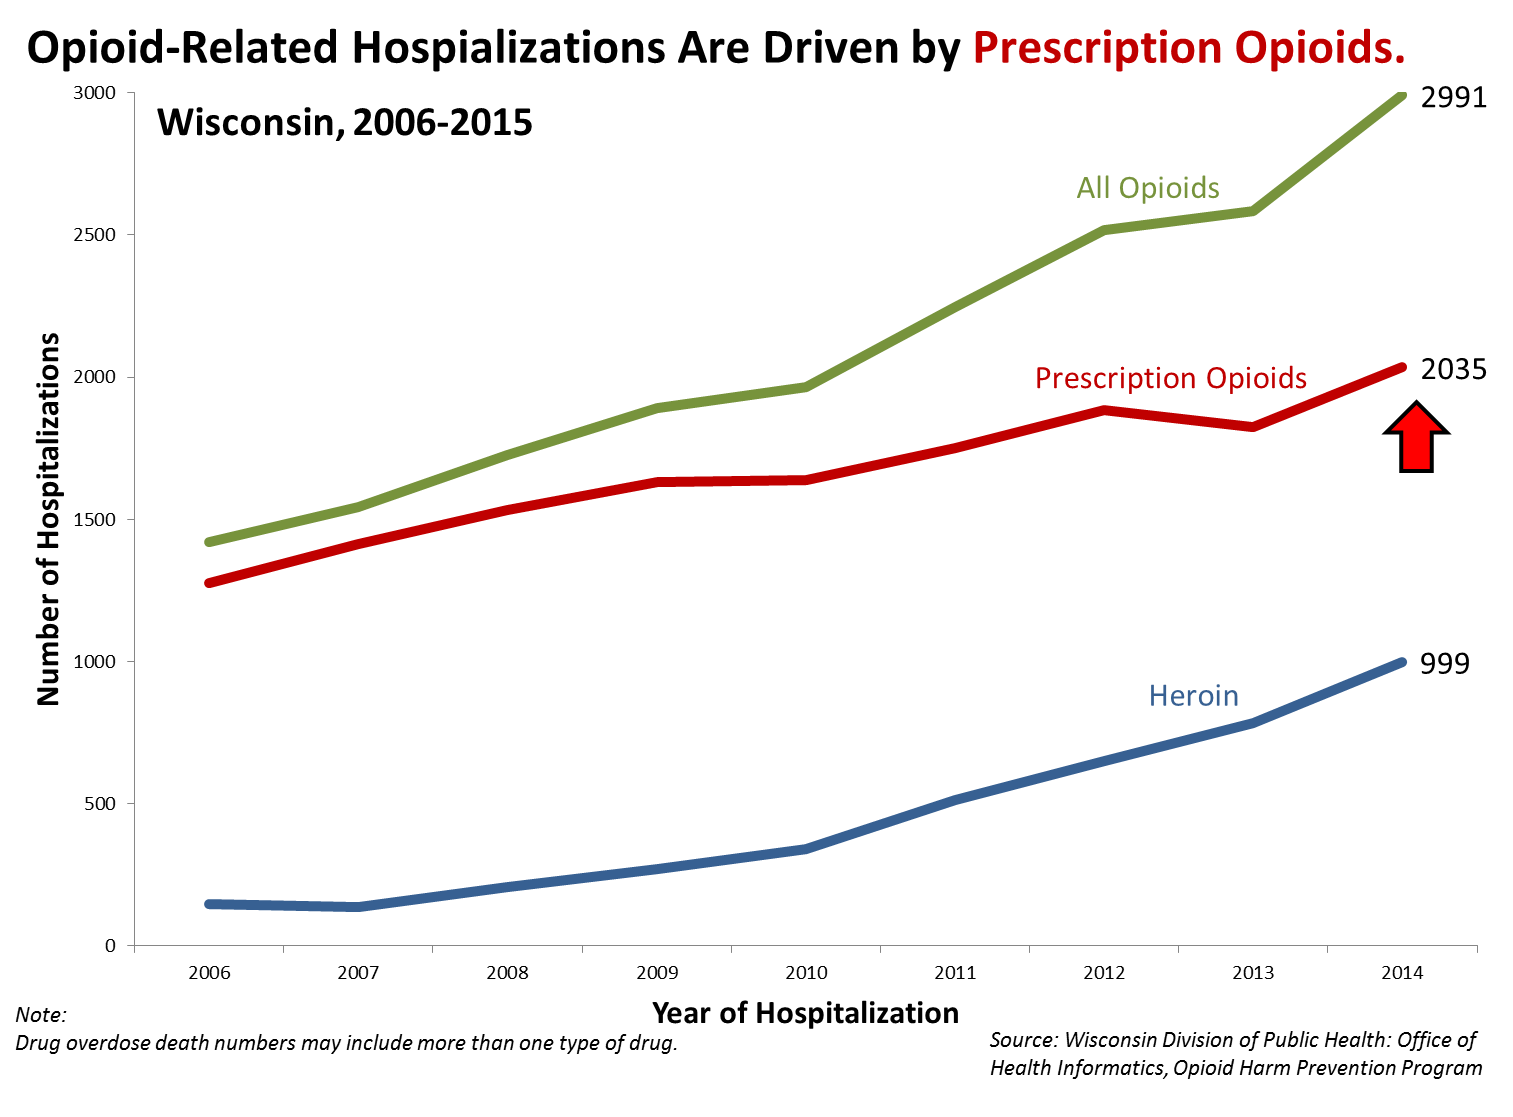 Opioid-related hospitalizations are driven by prescription opioids